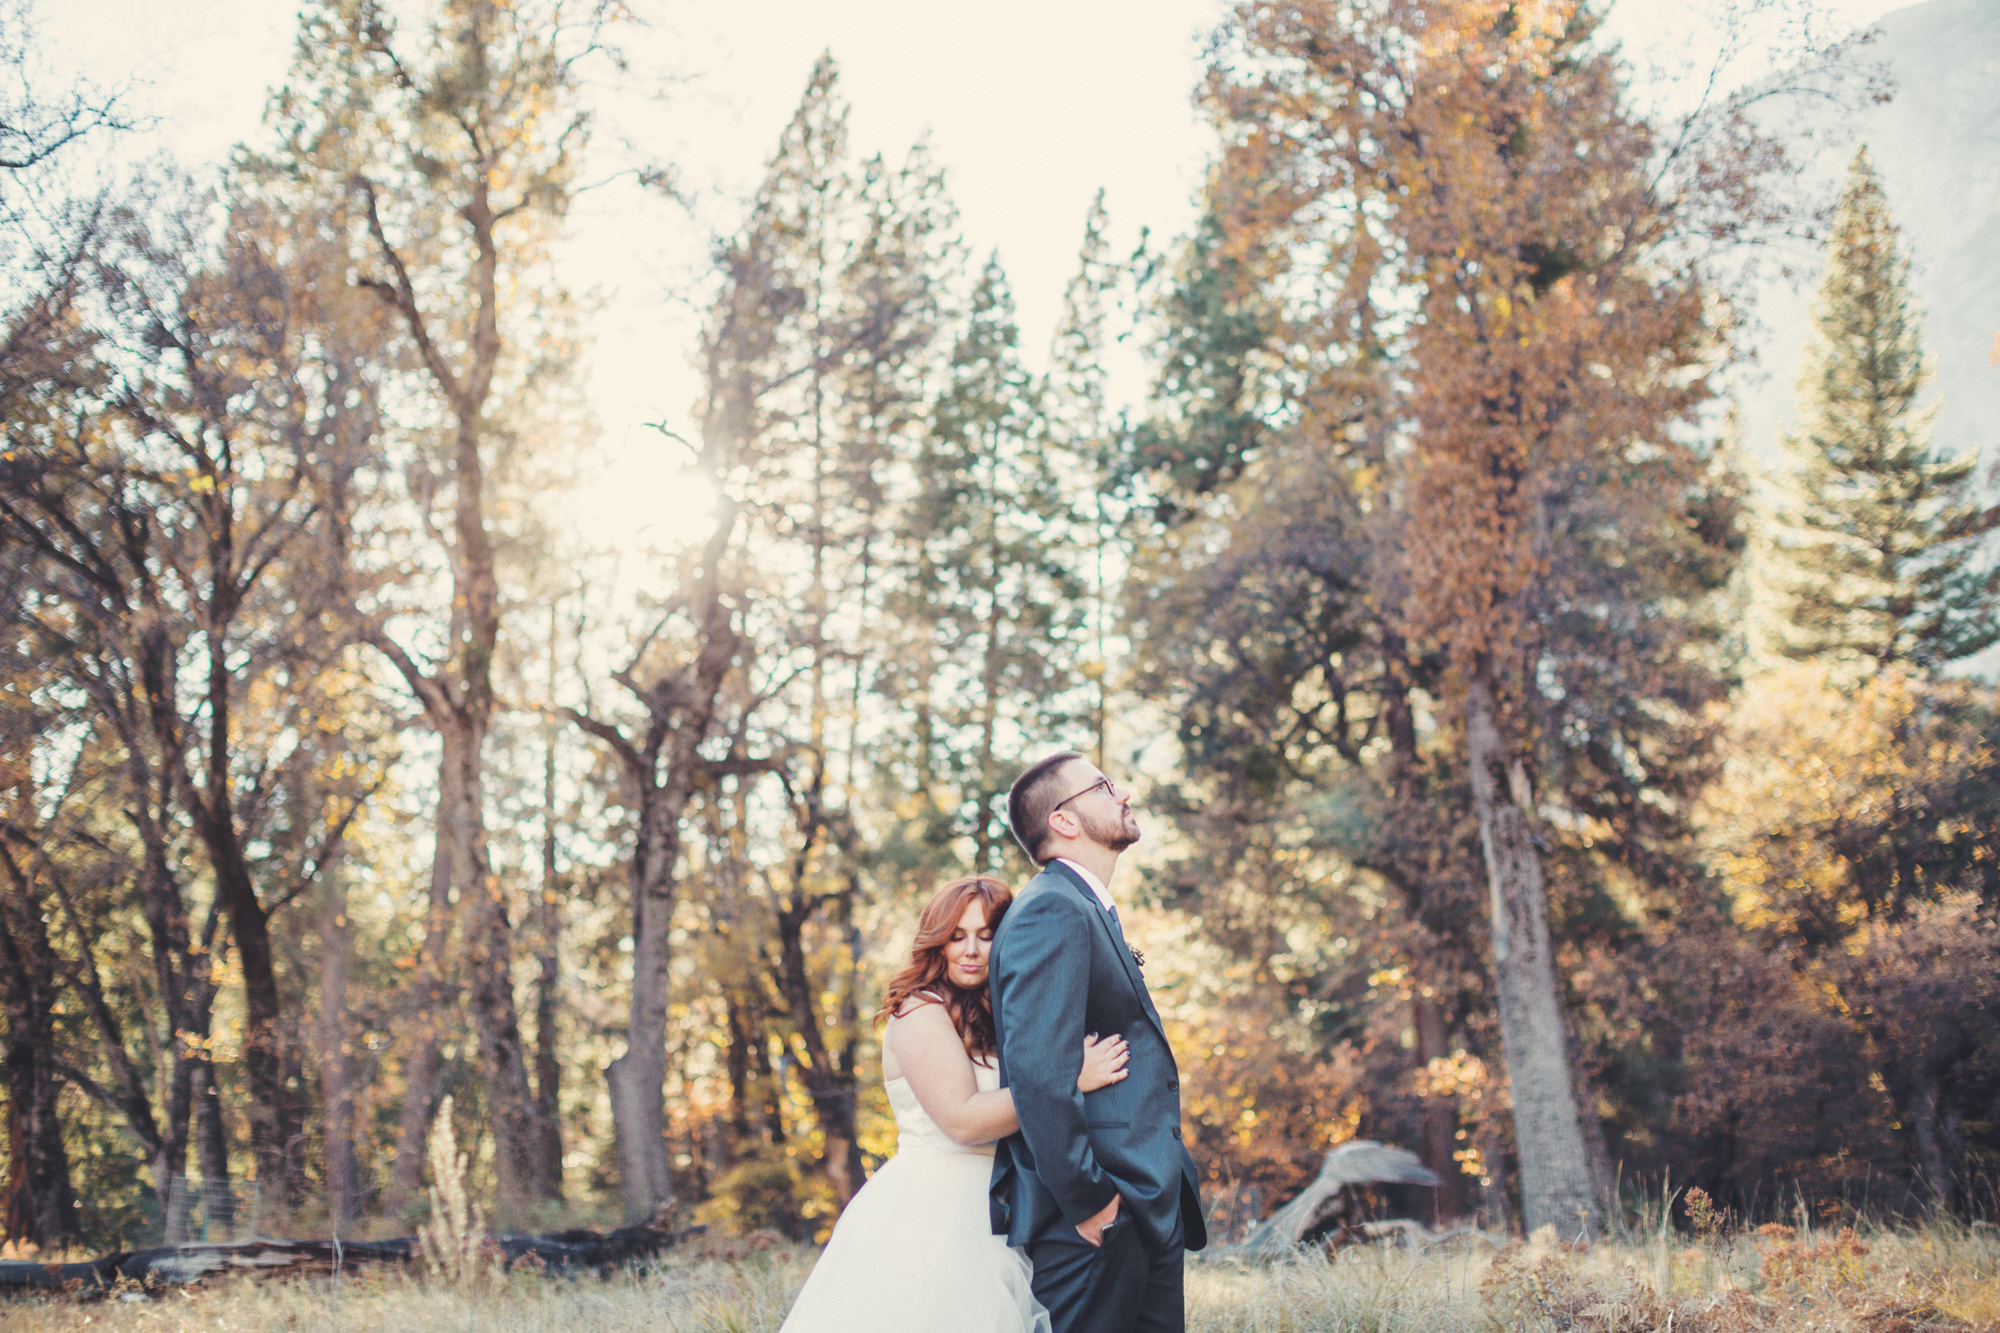 Yosemite wedding ©Anne-Claire Brun 85